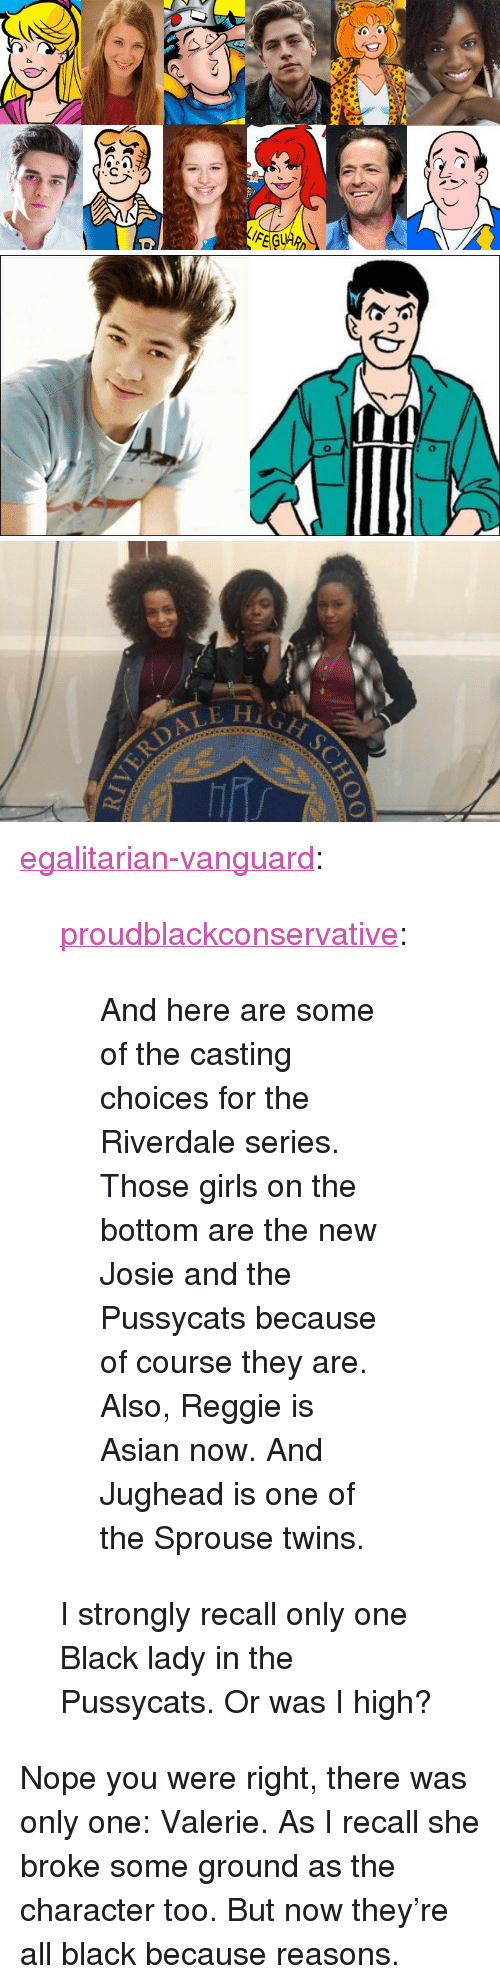 """riverdale: <p><a href=""""https://egalitarian-vanguard.tumblr.com/post/154011712217/and-here-are-some-of-the-casting-choices-for-the"""" class=""""tumblr_blog"""">egalitarian-vanguard</a>:</p>  <blockquote><p><a href=""""https://proudblackconservative.tumblr.com/post/154011465064/and-here-are-some-of-the-casting-choices-for-the"""" class=""""tumblr_blog"""">proudblackconservative</a>:</p><blockquote><p>And here are some of the casting choices for the Riverdale series. Those girls on the bottom are the new Josie and the Pussycats because of course they are. Also, Reggie is Asian now. And Jughead is one of the Sprouse twins. </p></blockquote> <p>I strongly recall only one Black lady in the Pussycats. Or was I high?<br/></p></blockquote>  <p>Nope you were right, there was only one: Valerie. As I recall she broke some ground as the character too. But now they&rsquo;re all black because reasons.</p>"""